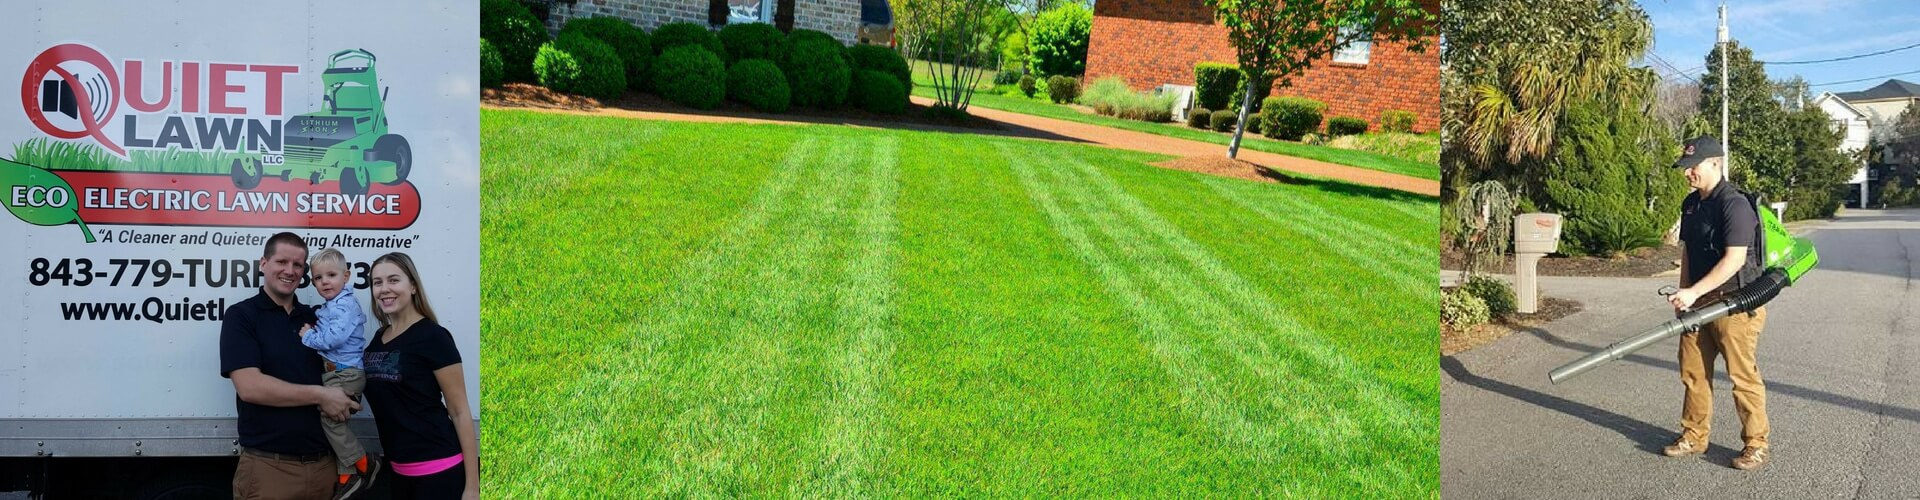 30 Reviews 5 Star Rated Lawn Care Service Quiet Lawn